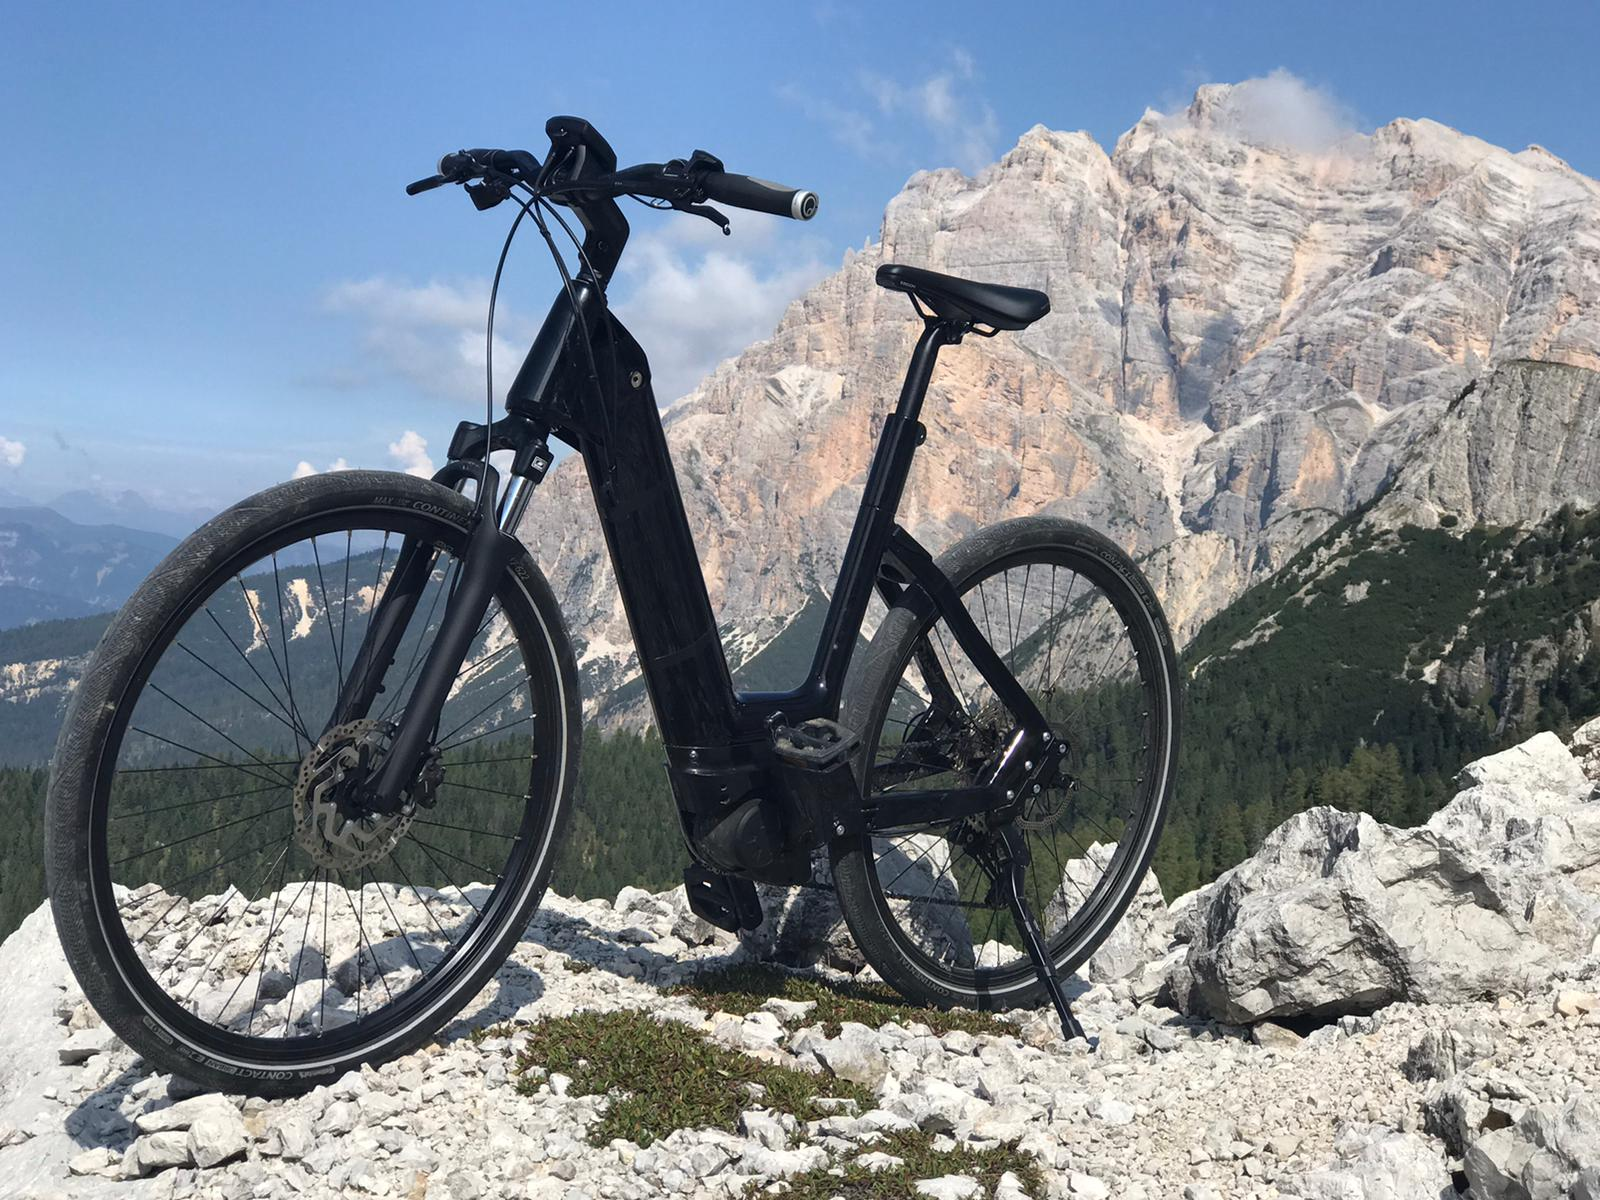 Test bicycle